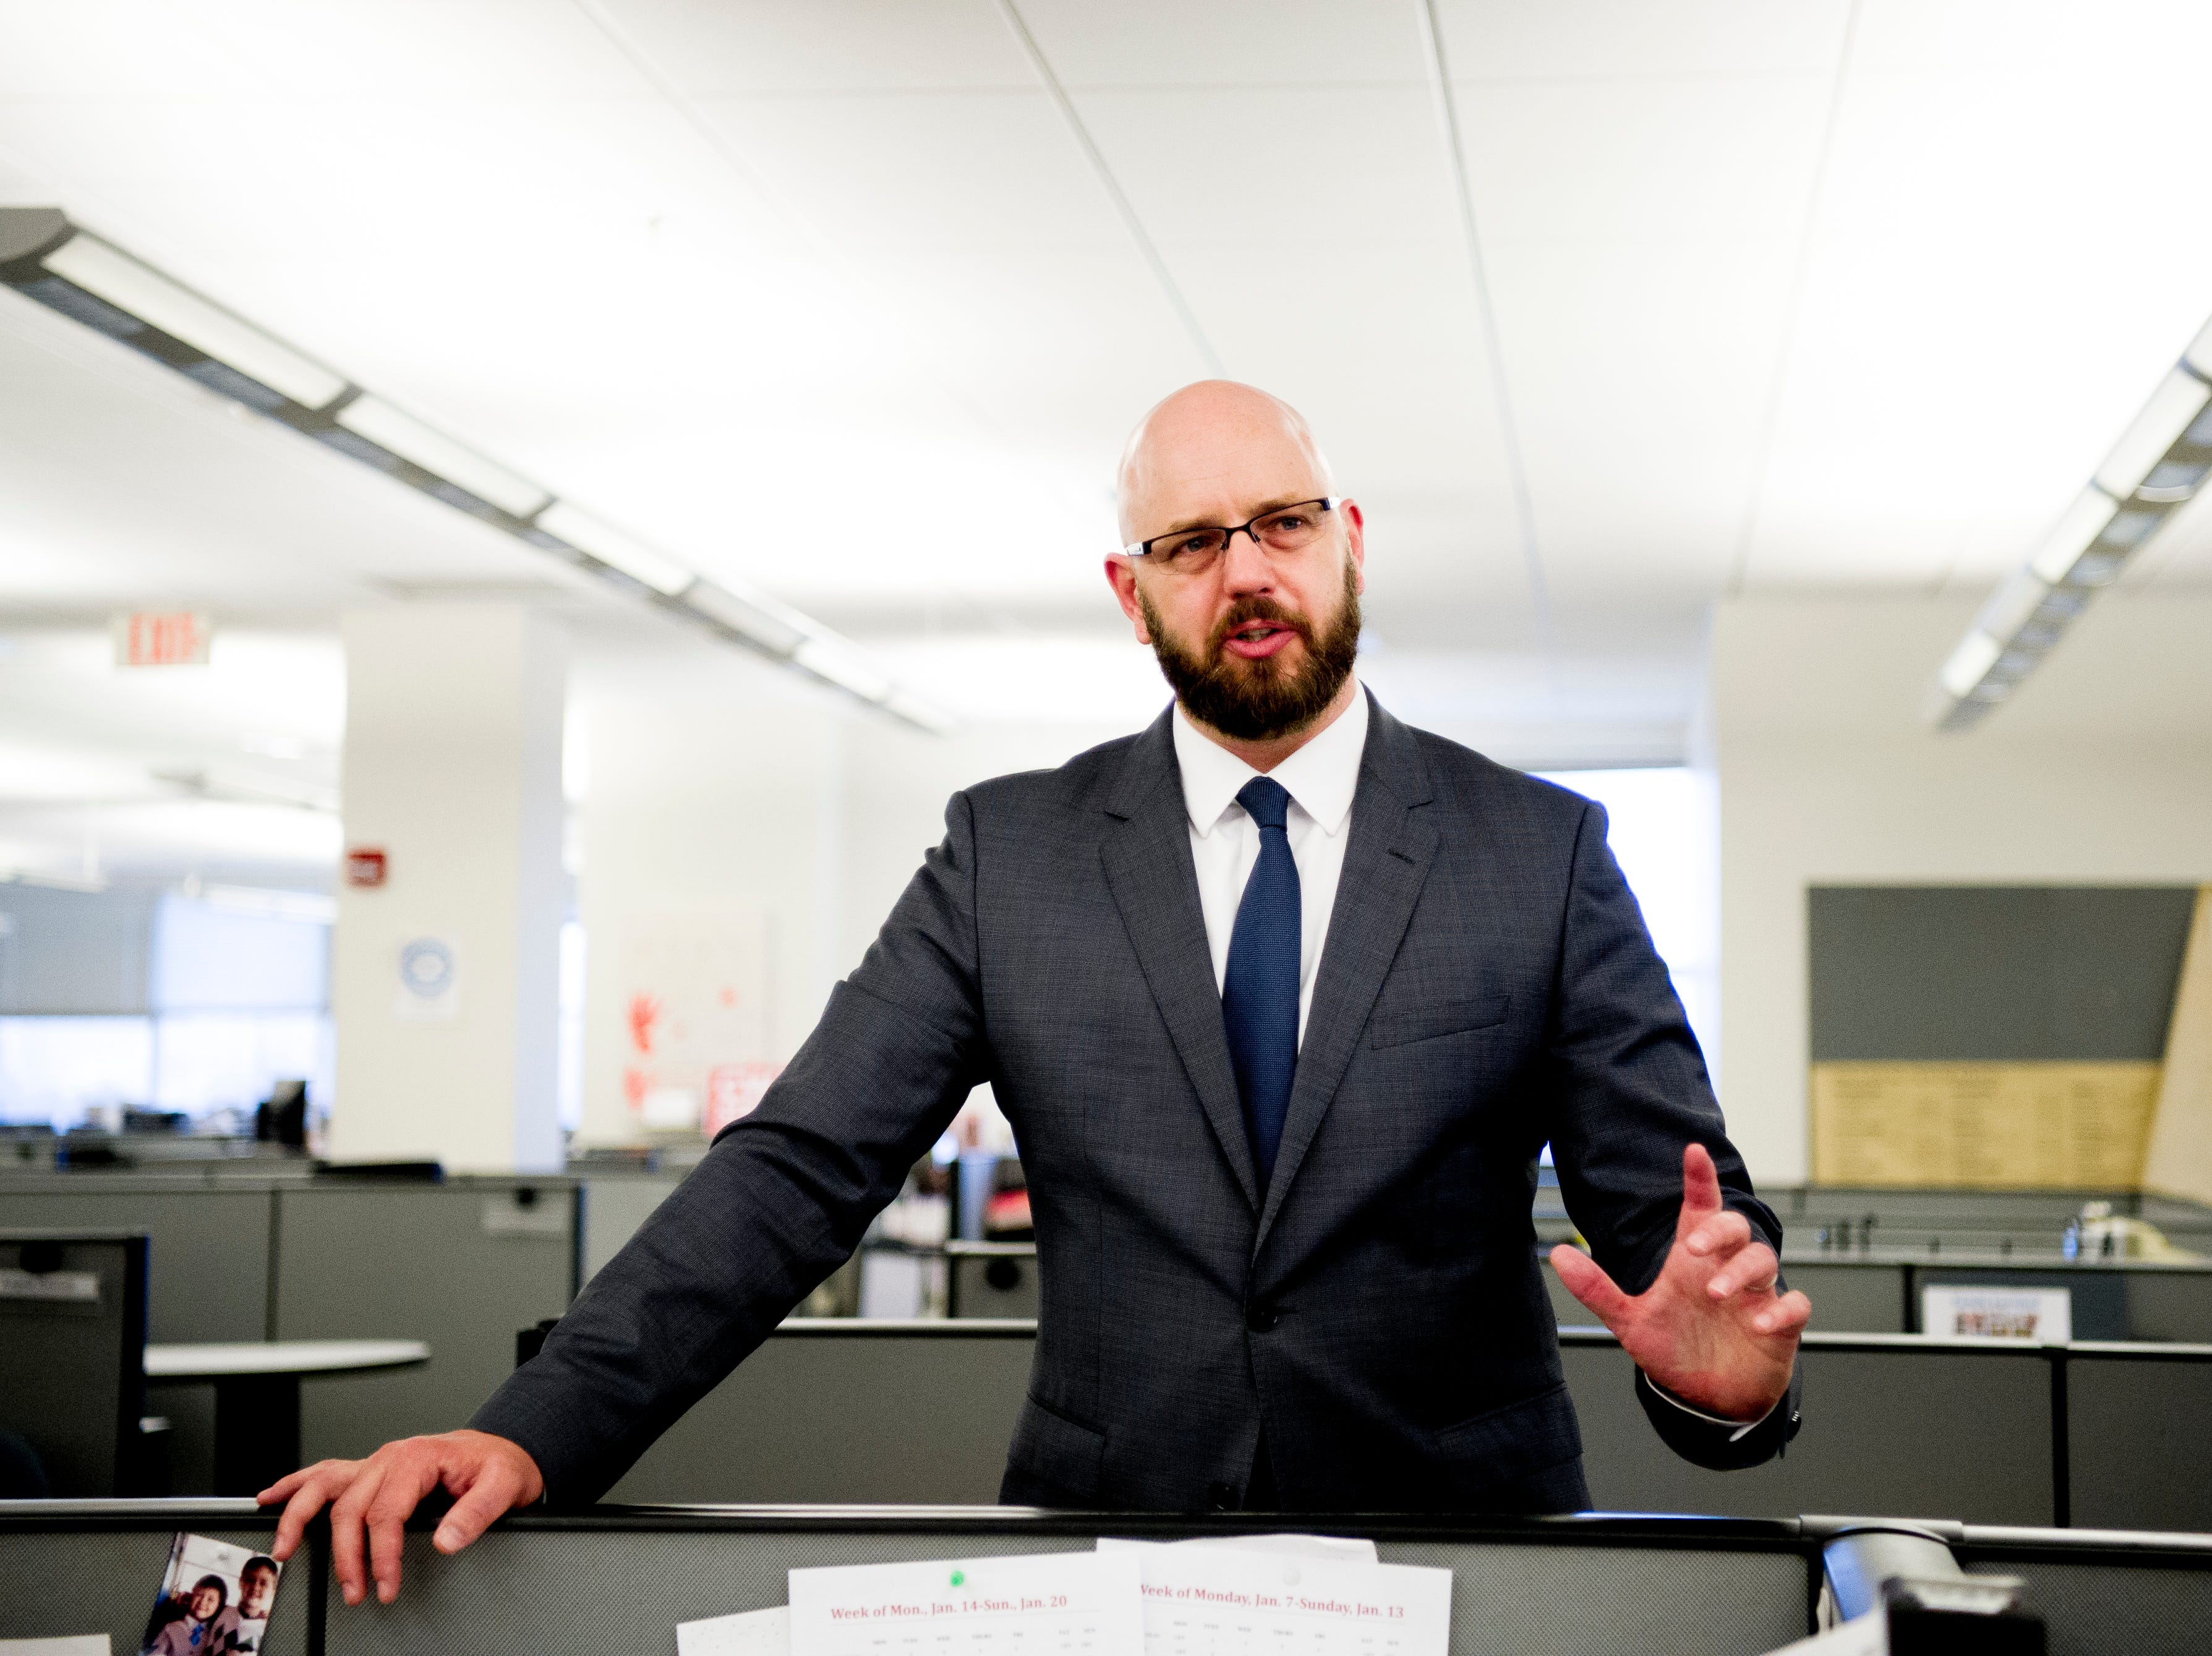 Joel Christopher, Executive Editor of the Courier Journal in Louisville, Kentucky, speaks during a welcome celebration in the Knoxville News Sentinel newsroom in Knoxville, Tennessee on Friday, January 4, 2019. Christopher will take the helm of Knoxville News Sentinel in February as executive editor.